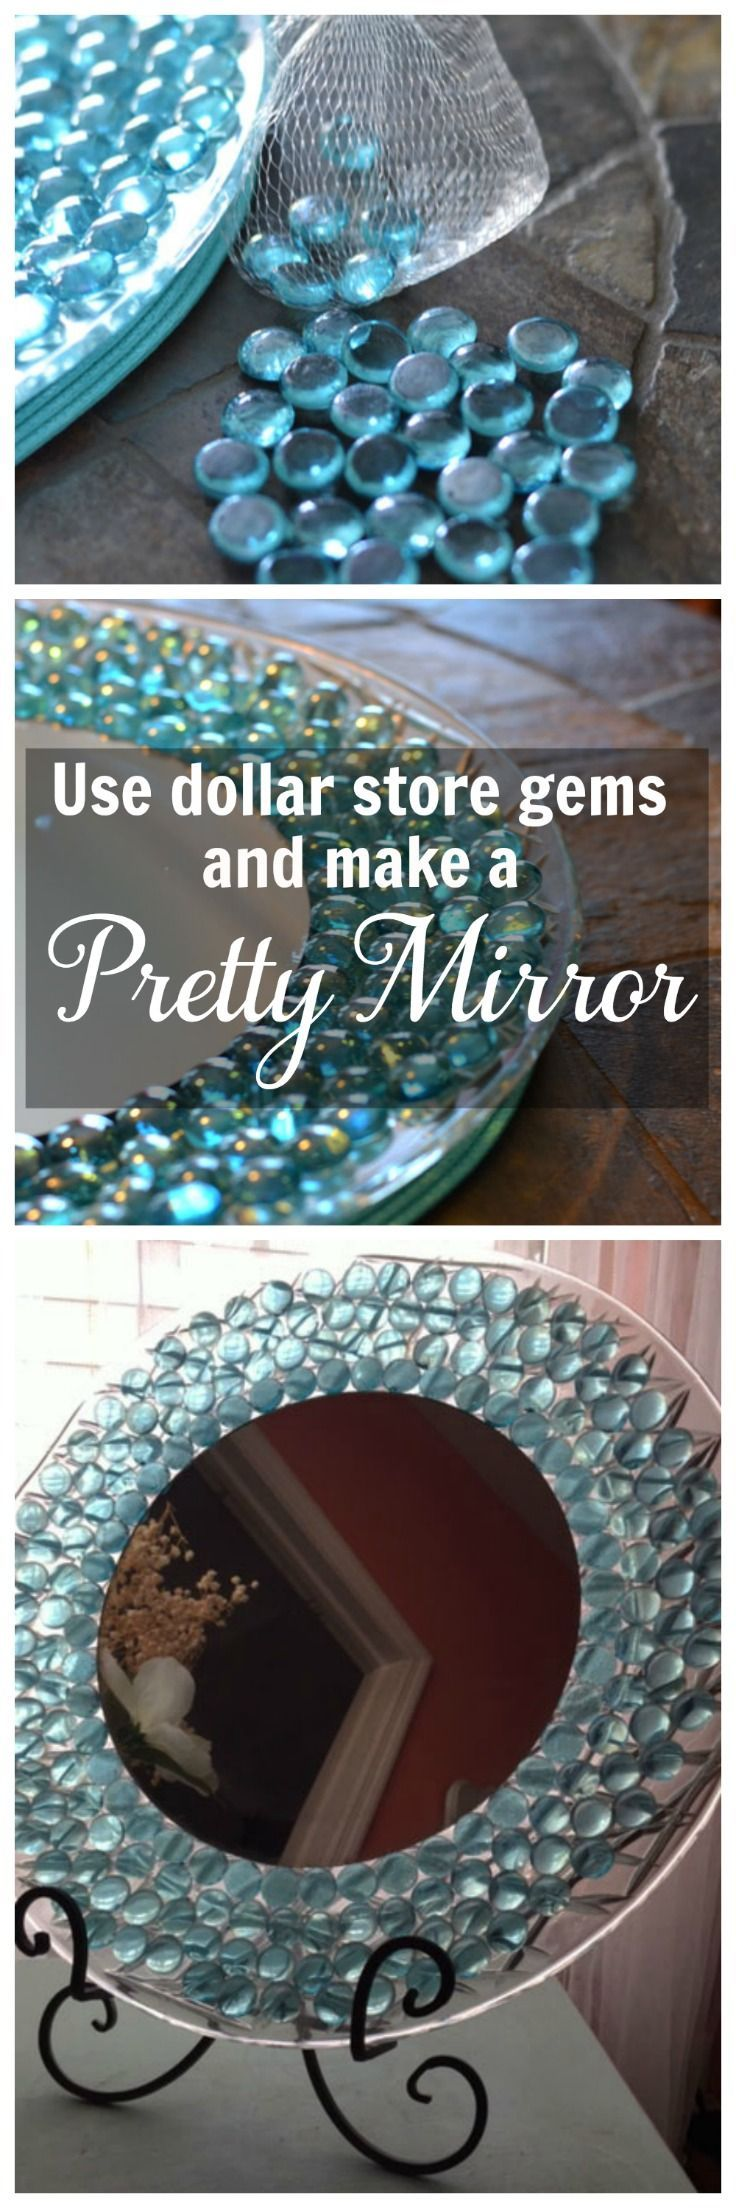 Small round mirrors for crafts - This Is An Easy Dollar Store Craft Use Items From The Dollar Store To Make